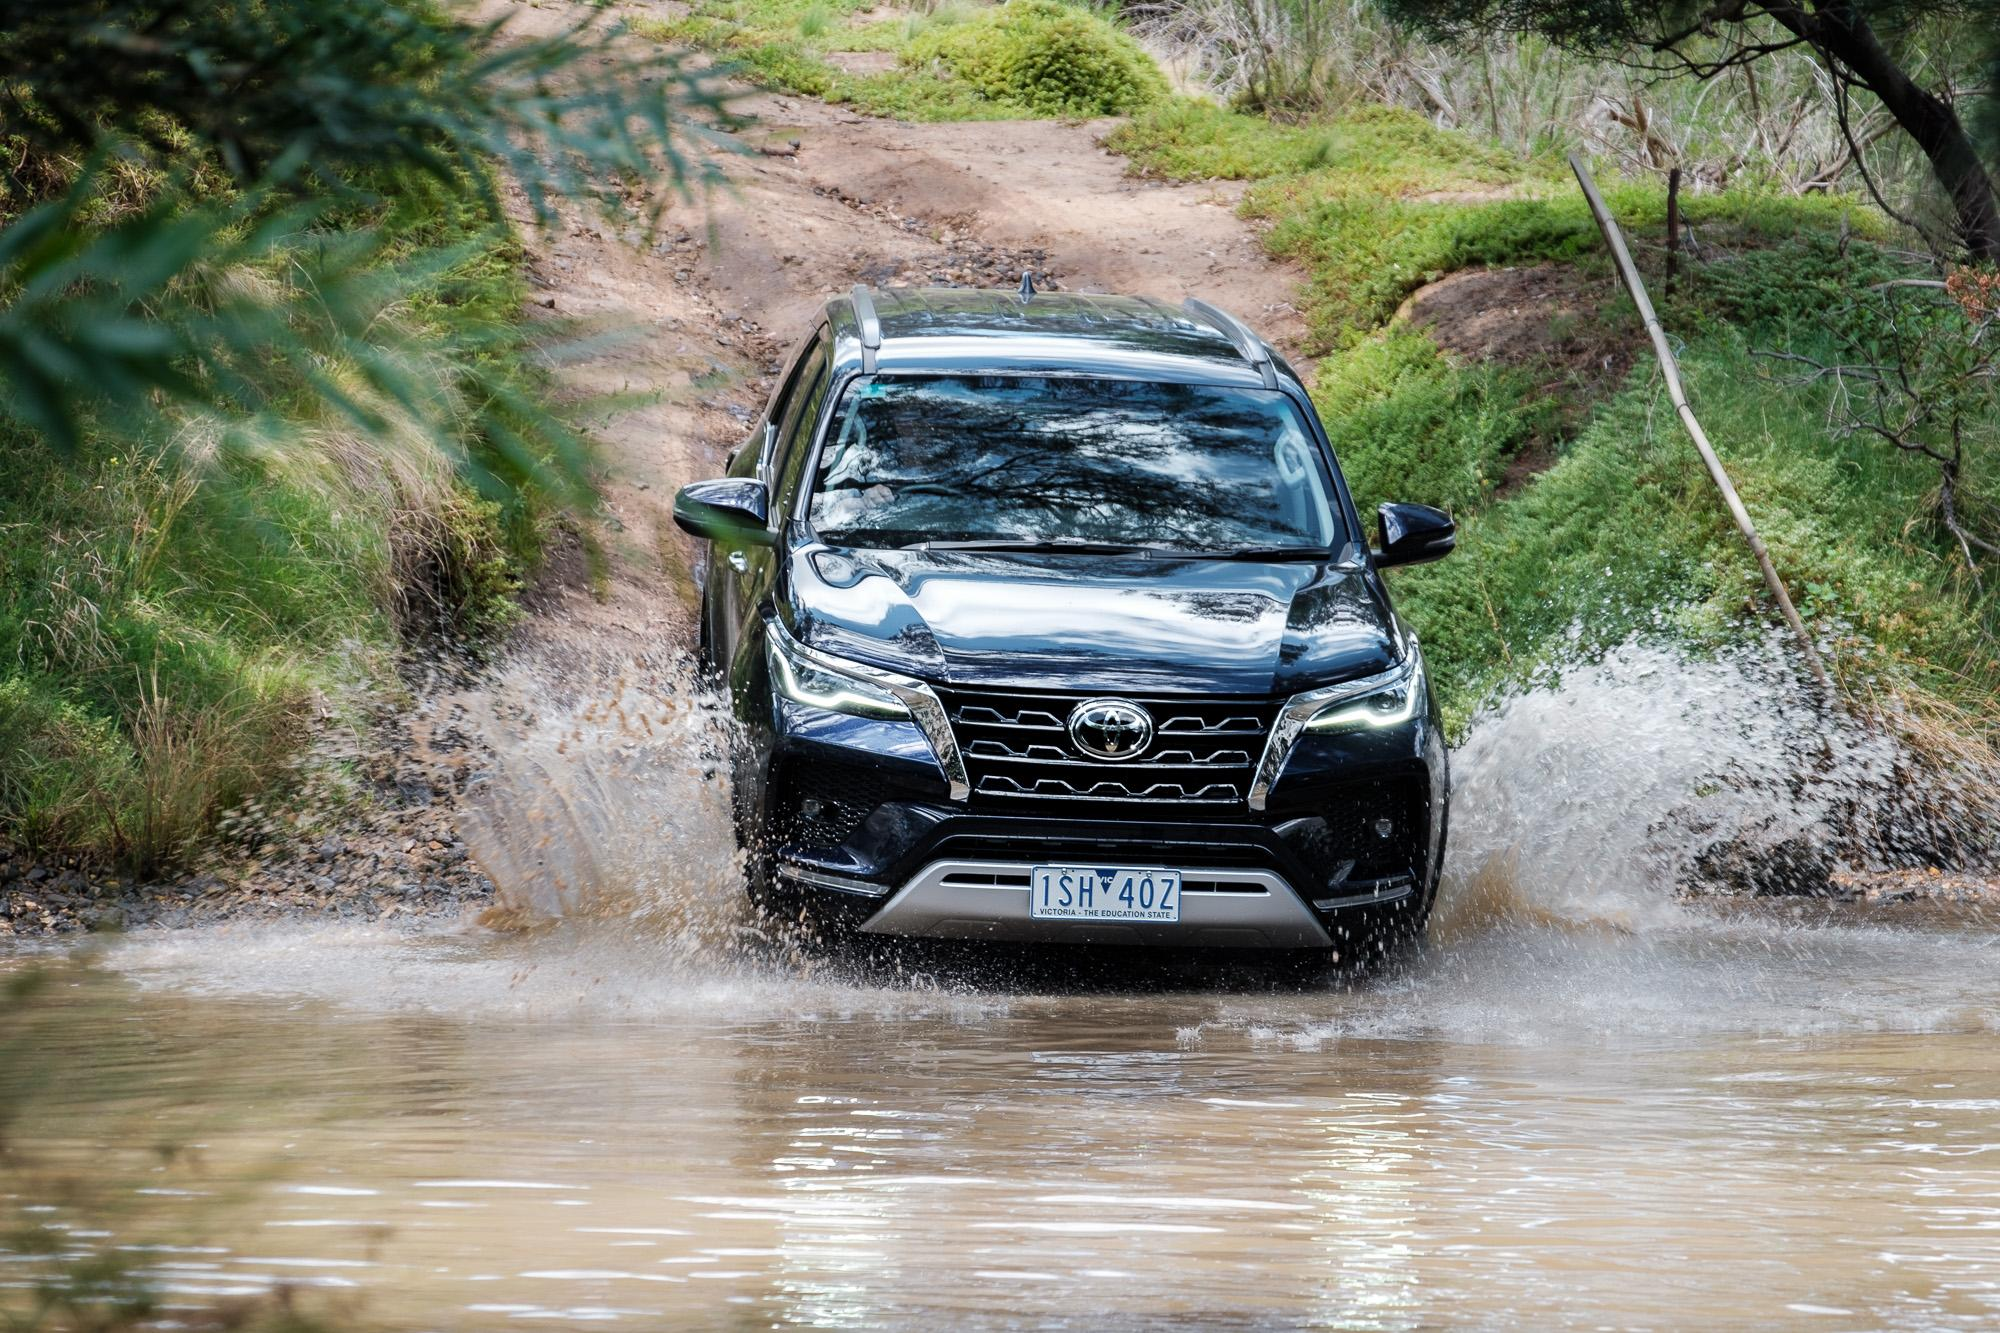 2021 Toyota Fortuner Crusade off-road review